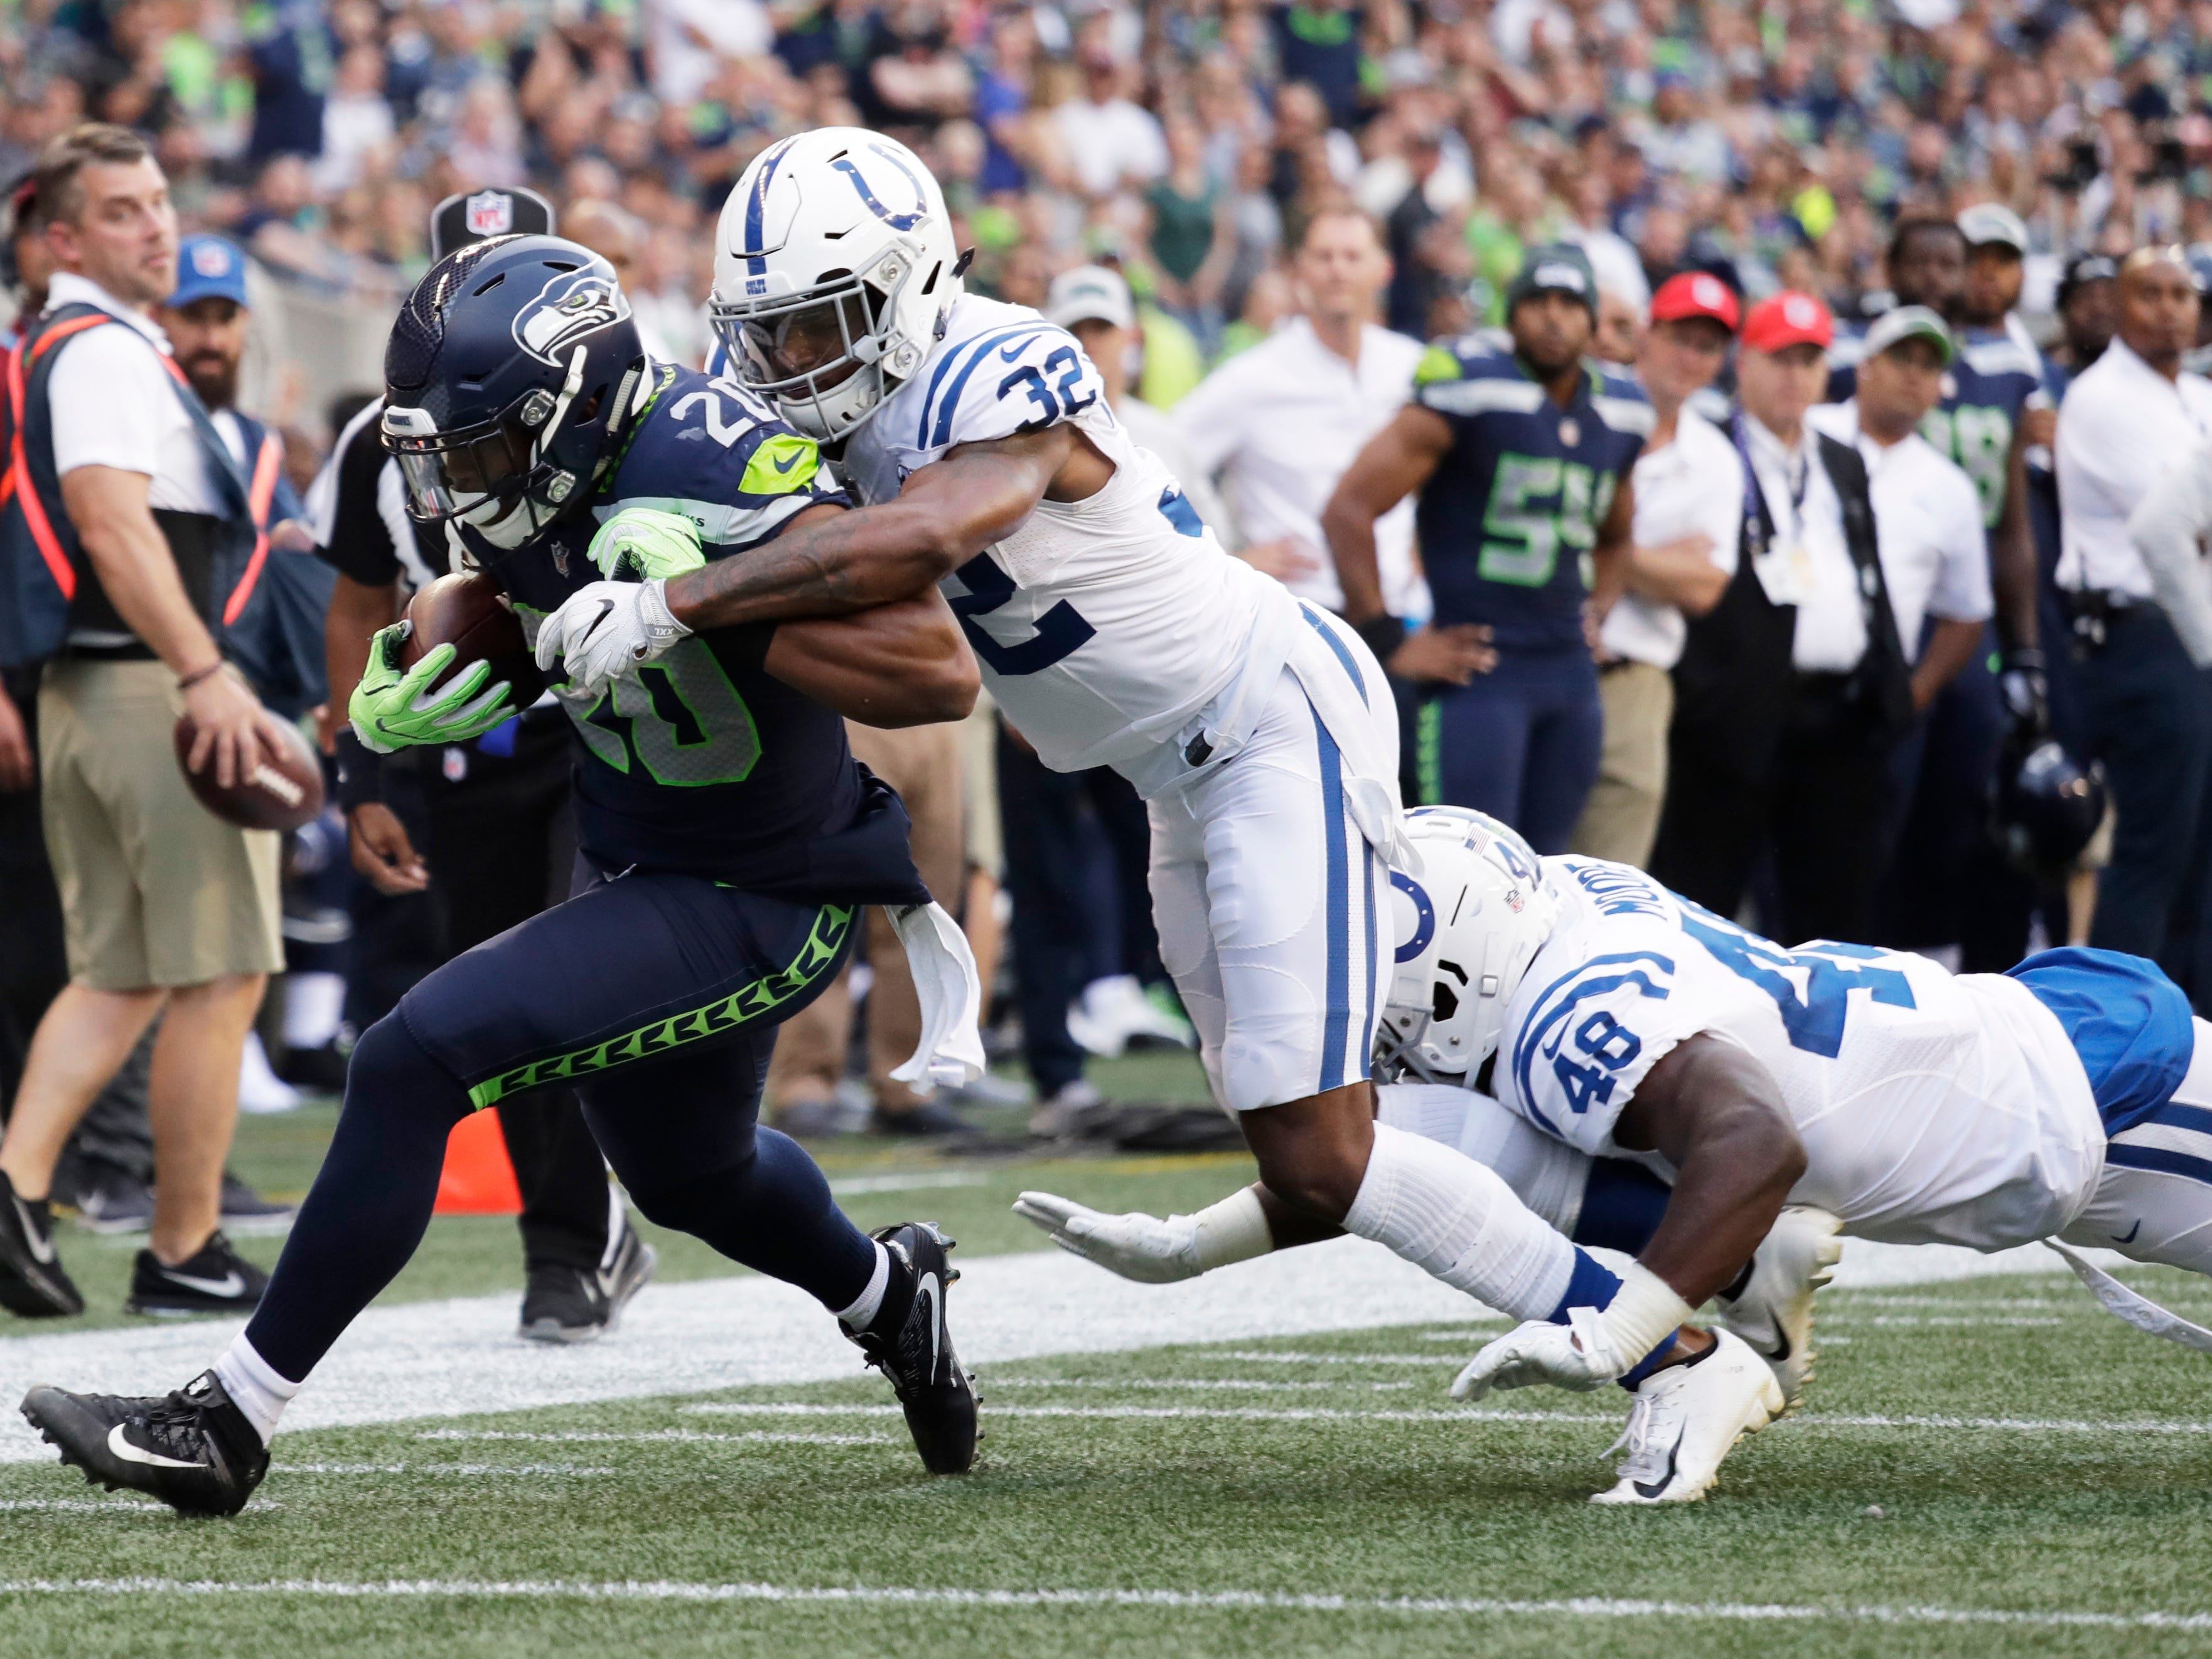 Seattle Seahawks running back Rashaad Penny (20) is tackled by Indianapolis Colts defensive back T.J. Green (32) during the first half of an NFL football preseason game, Thursday, Aug. 9, 2018, in Seattle. (AP Photo/Elaine Thompson)